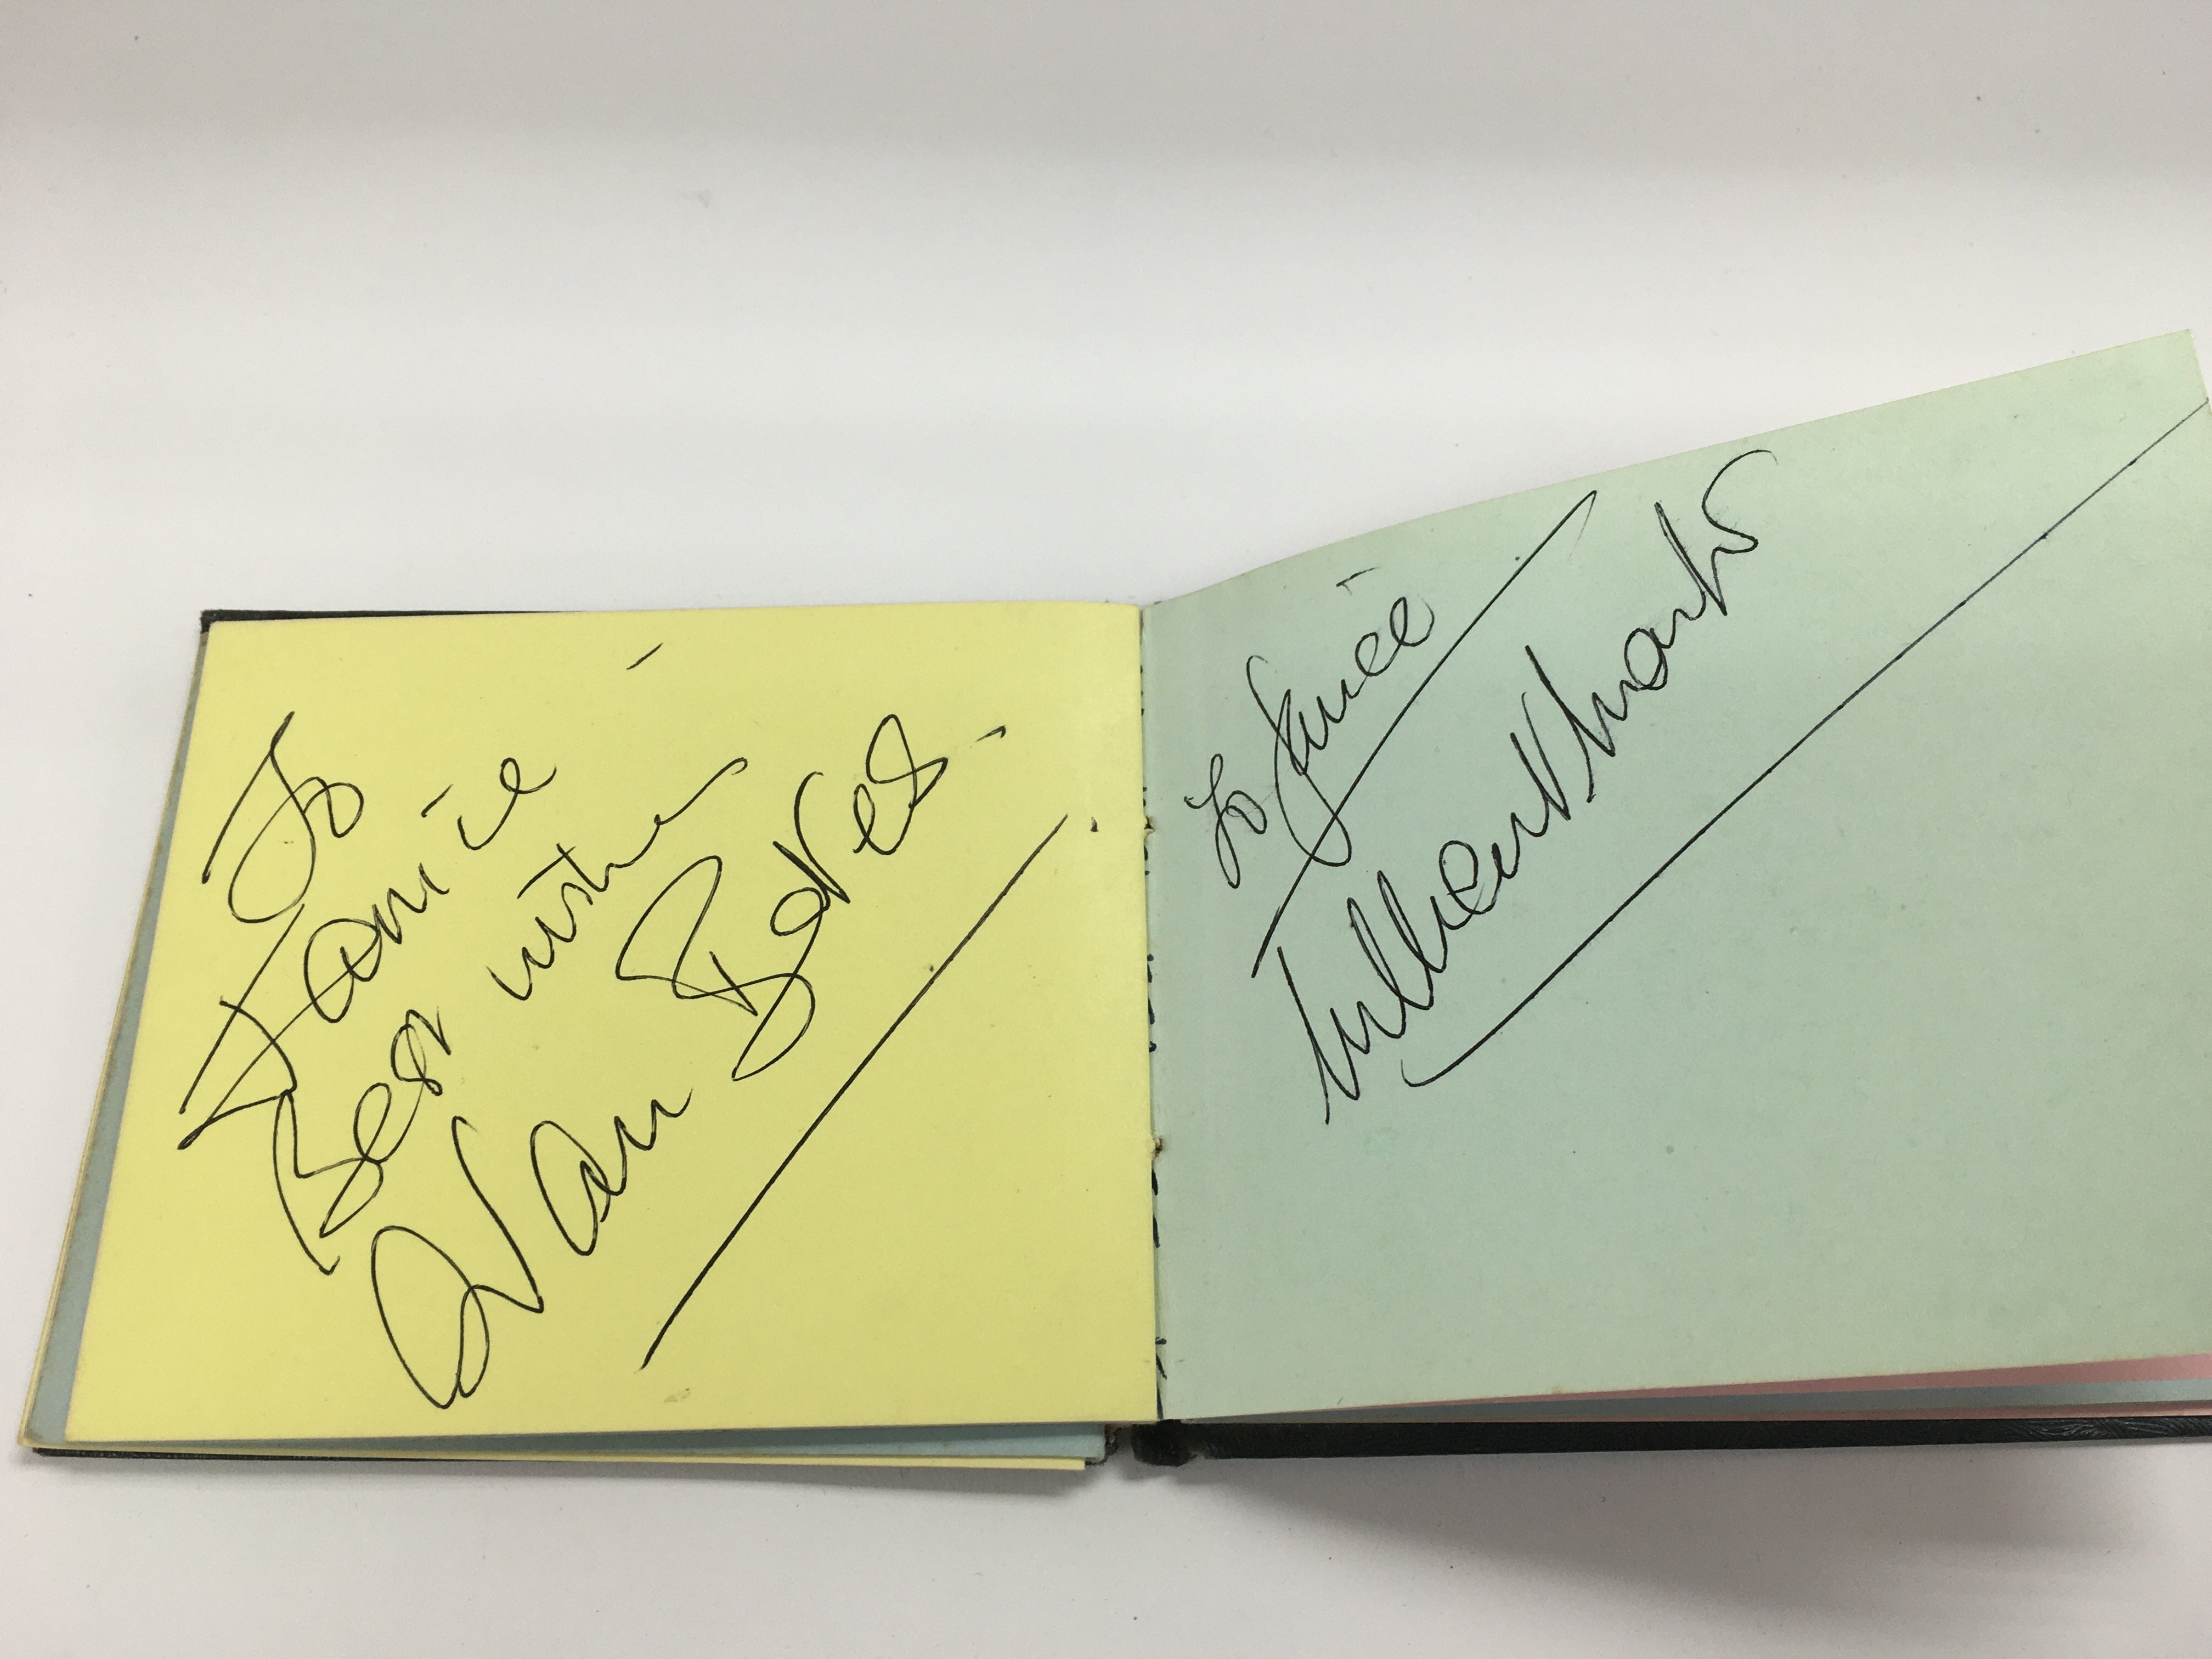 An autograph booklet containing various autographs - Image 3 of 5